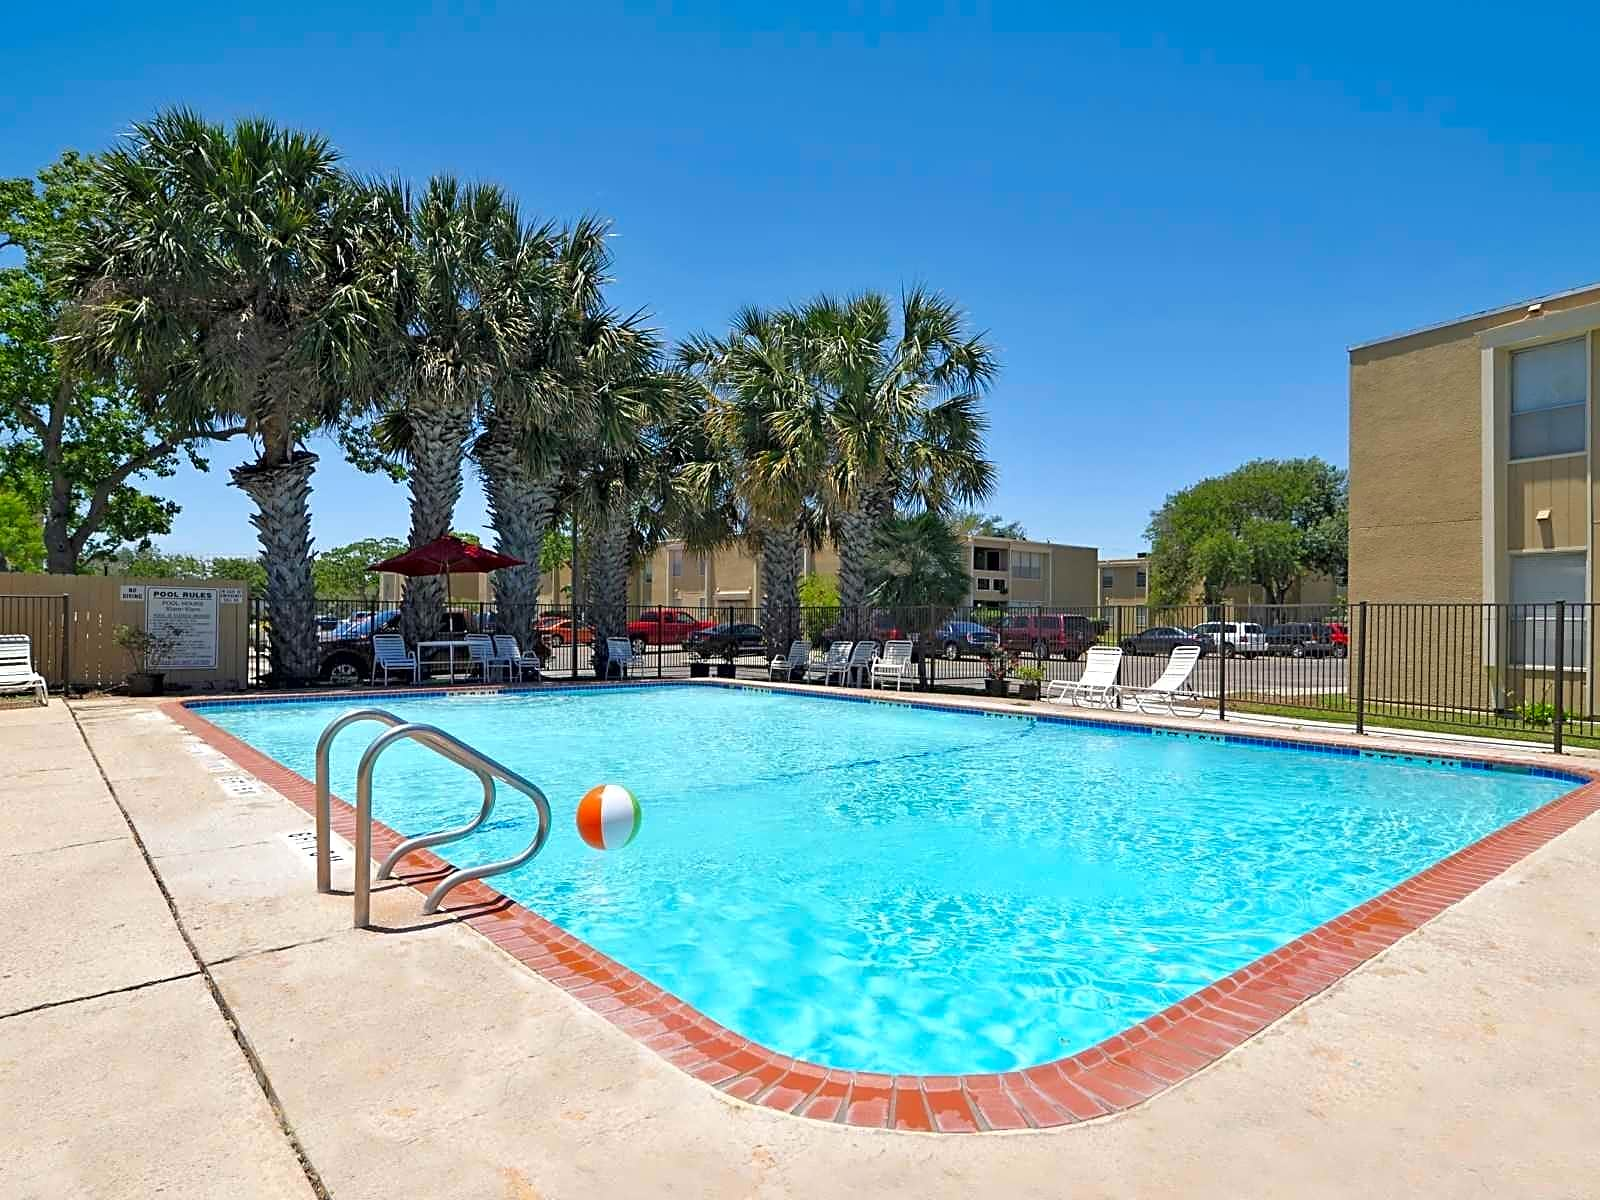 Regency Square for rent in Corpus Christi